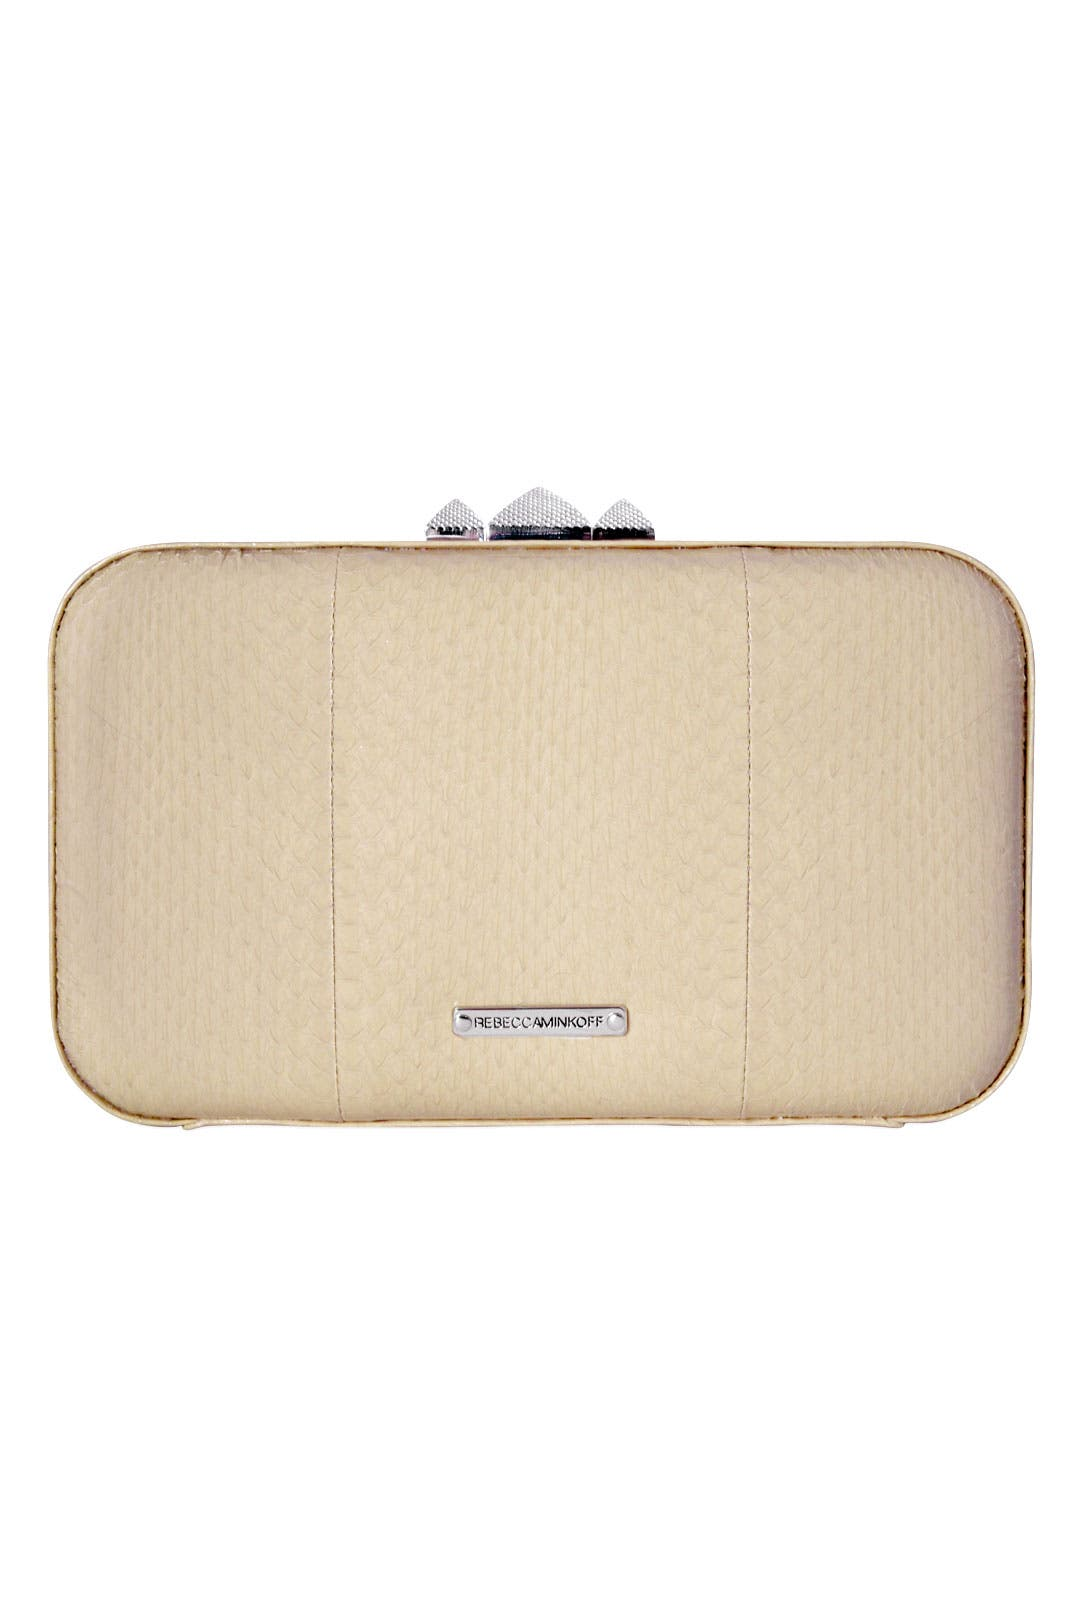 Eggshell Watersnake Clutch by Rebecca Minkoff Handbags